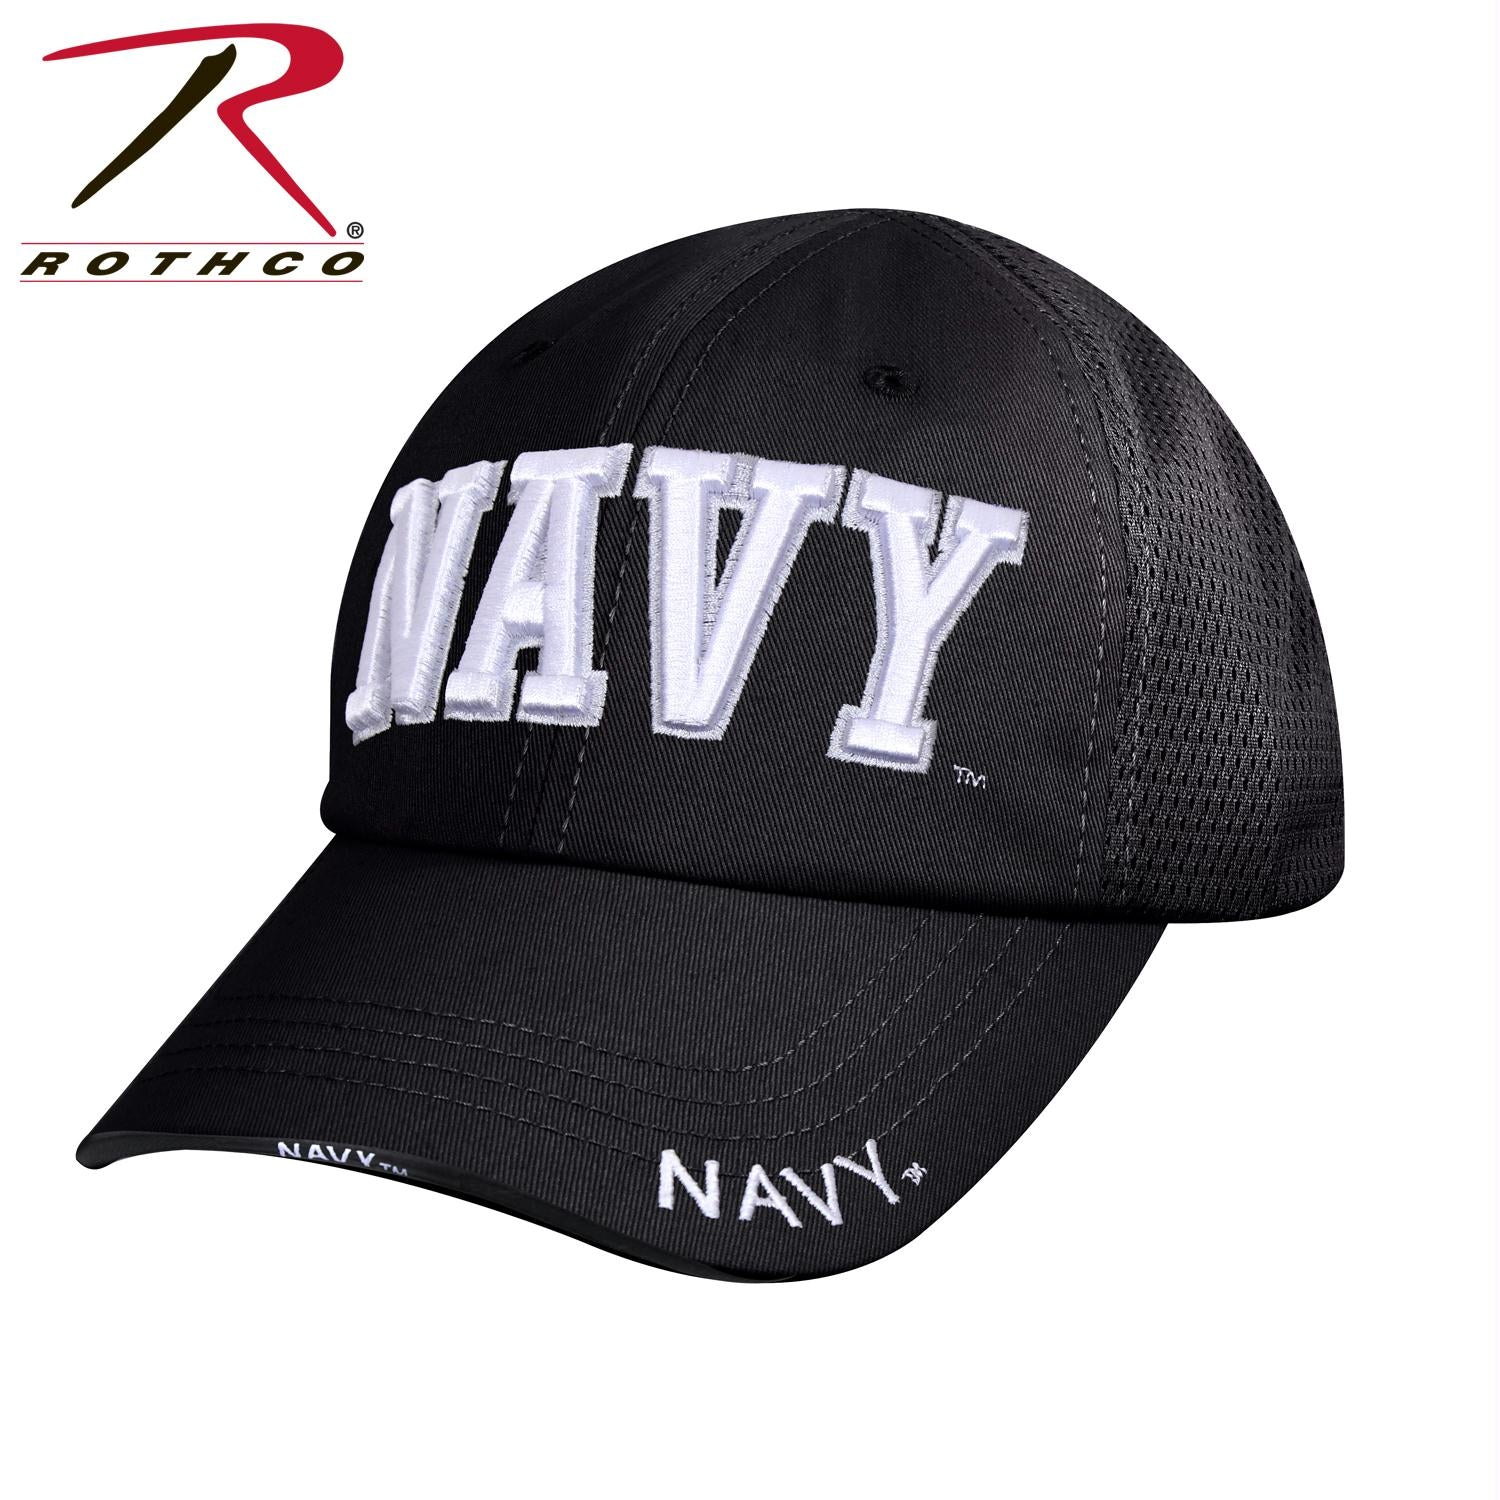 Rothco Navy Mesh Back Tactical Cap - Black / One Size